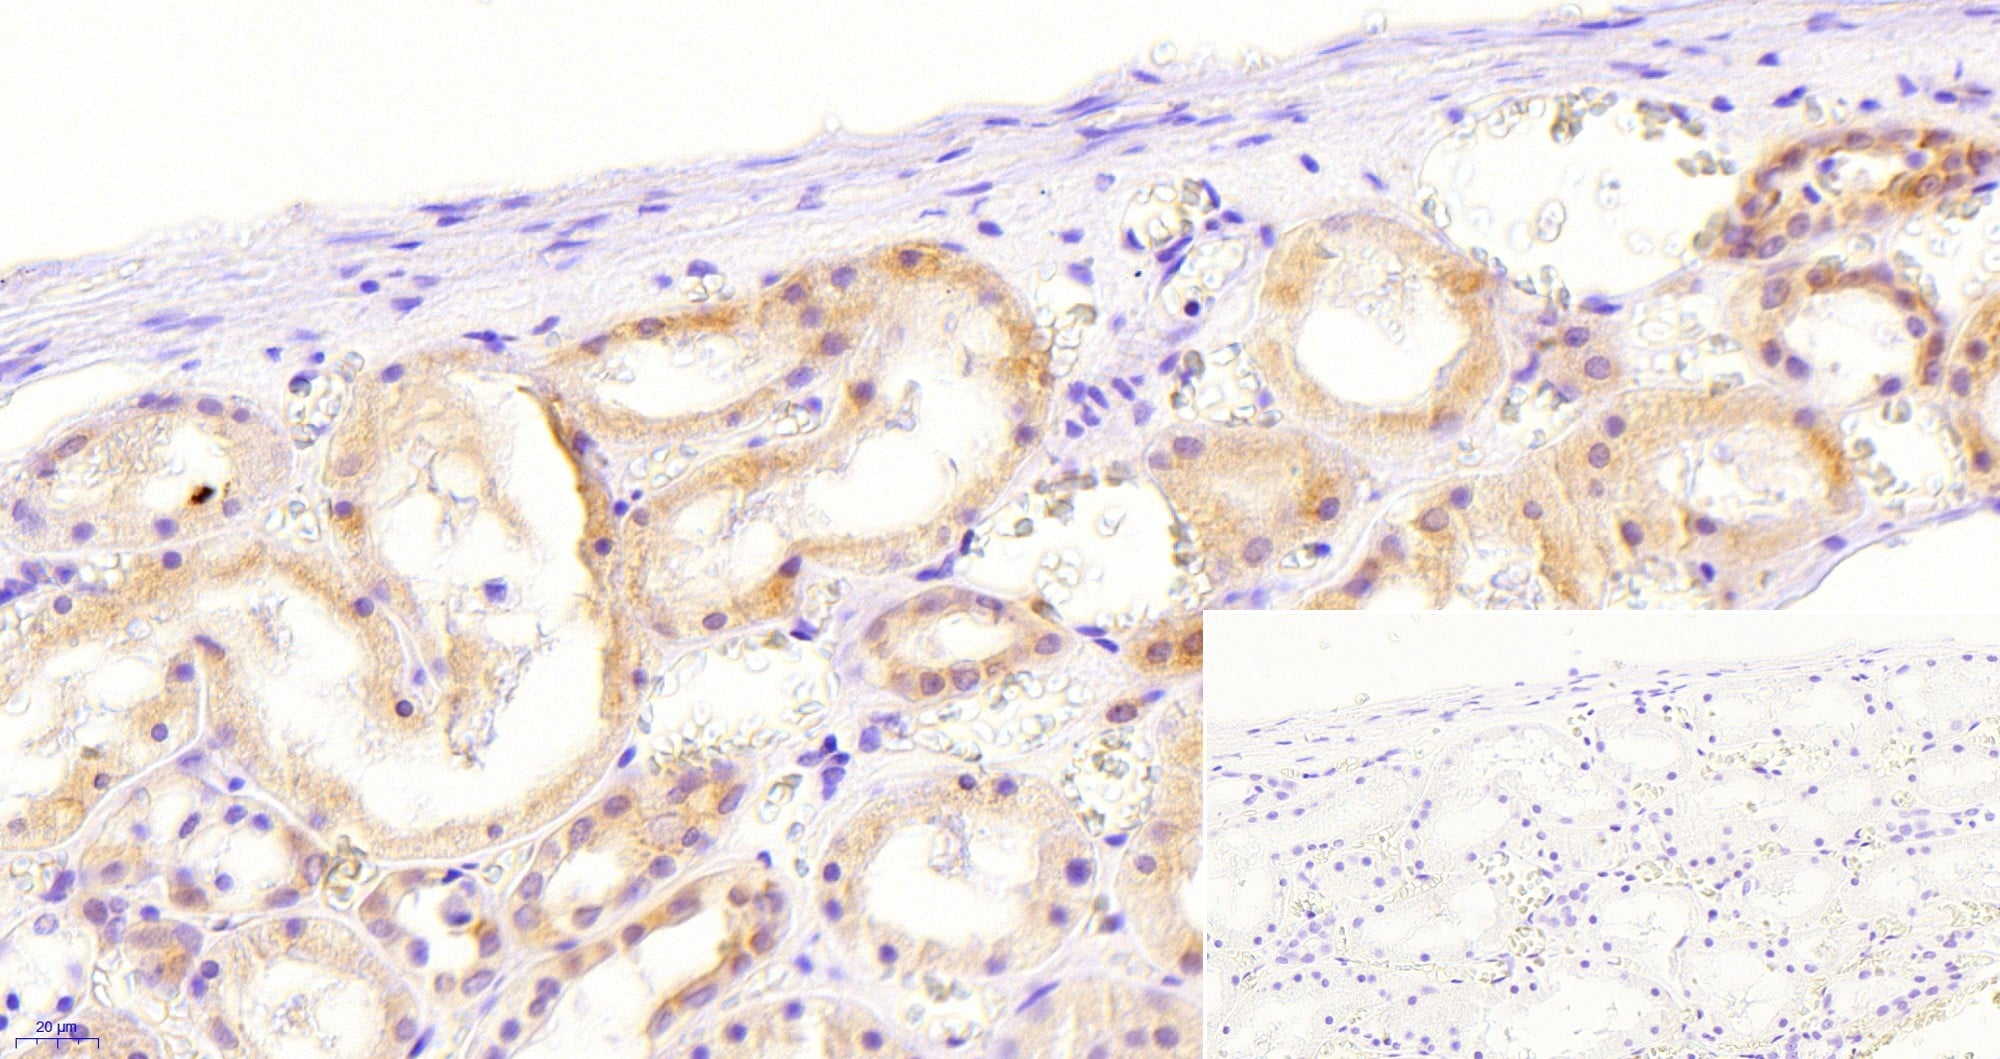 Immunohistochemistry (Formalin/PFA-fixed paraffin-embedded sections) - Anti-NOX1 antibody (ab121009)